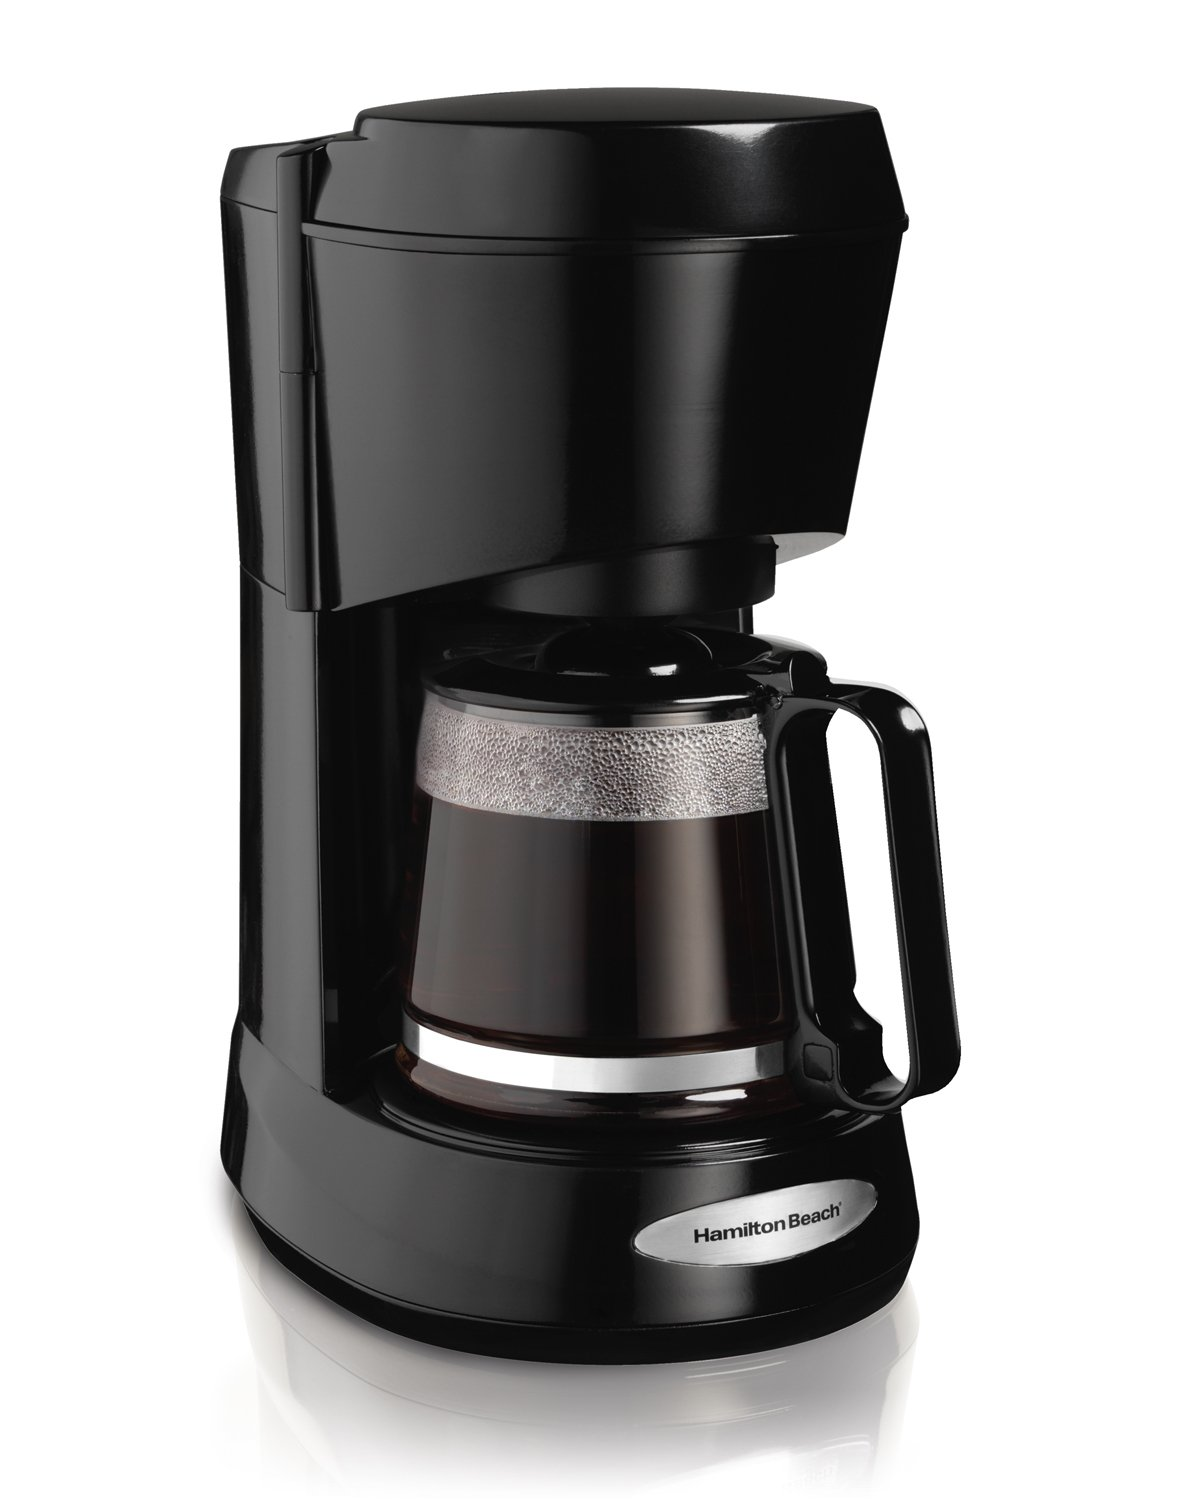 Hamilton Beach Coffee Maker 48136: Make 5 Cups With Utter Ease